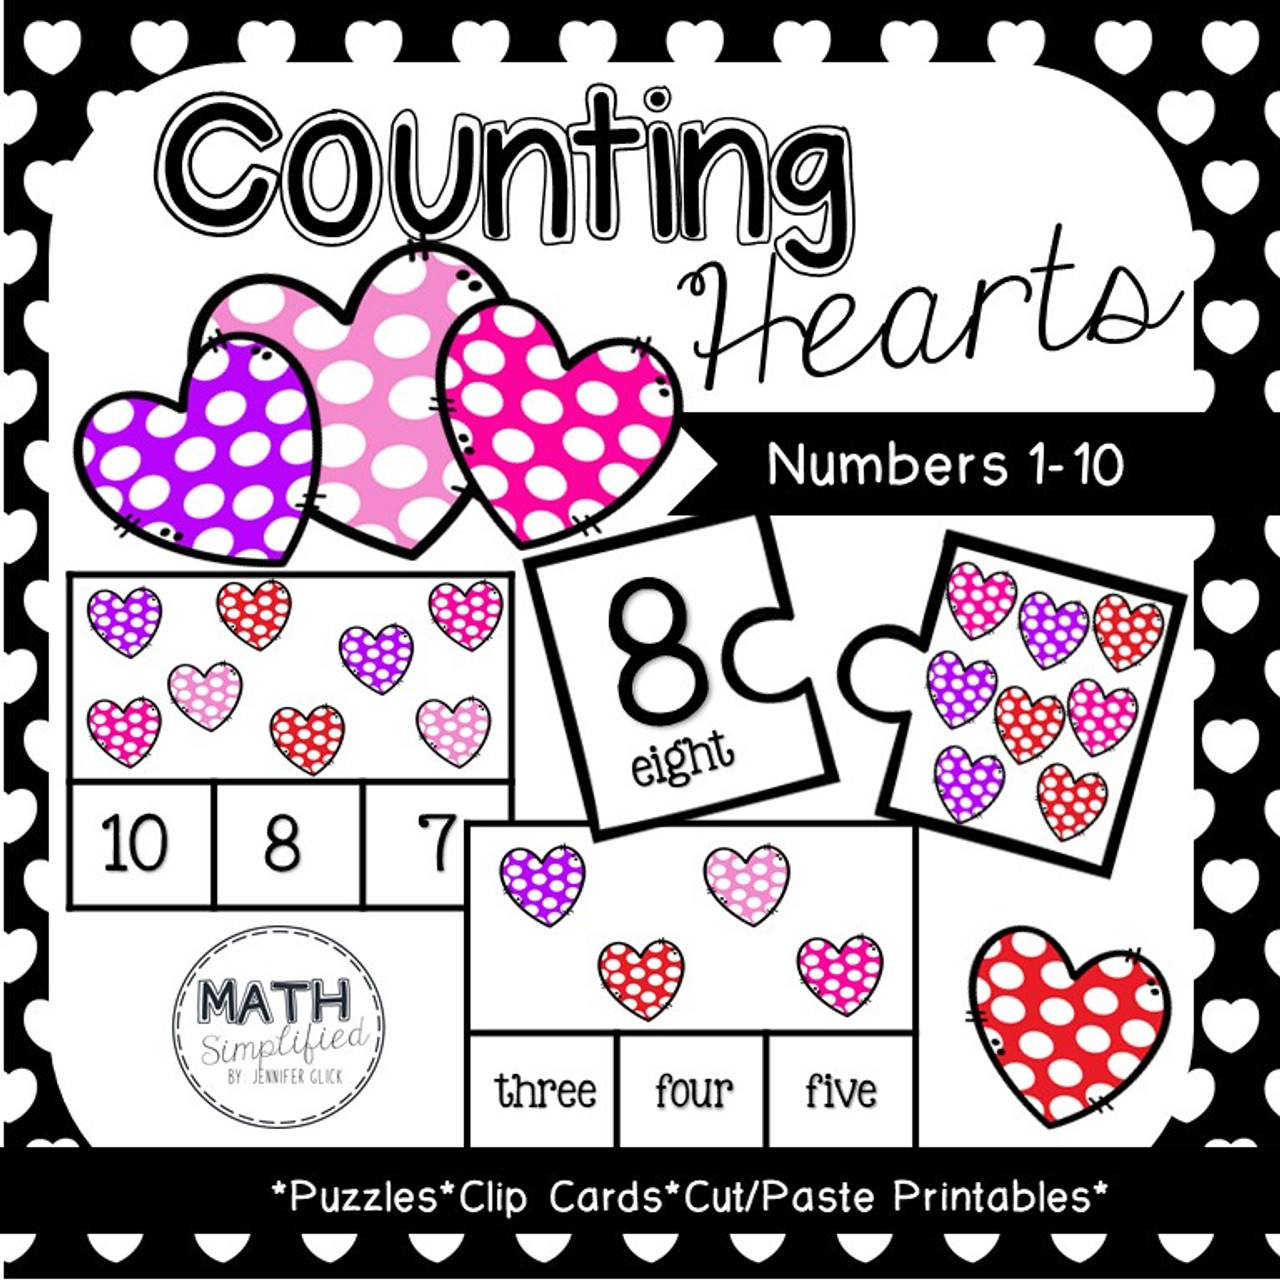 Counting Hearts: Number Recognition #1-10